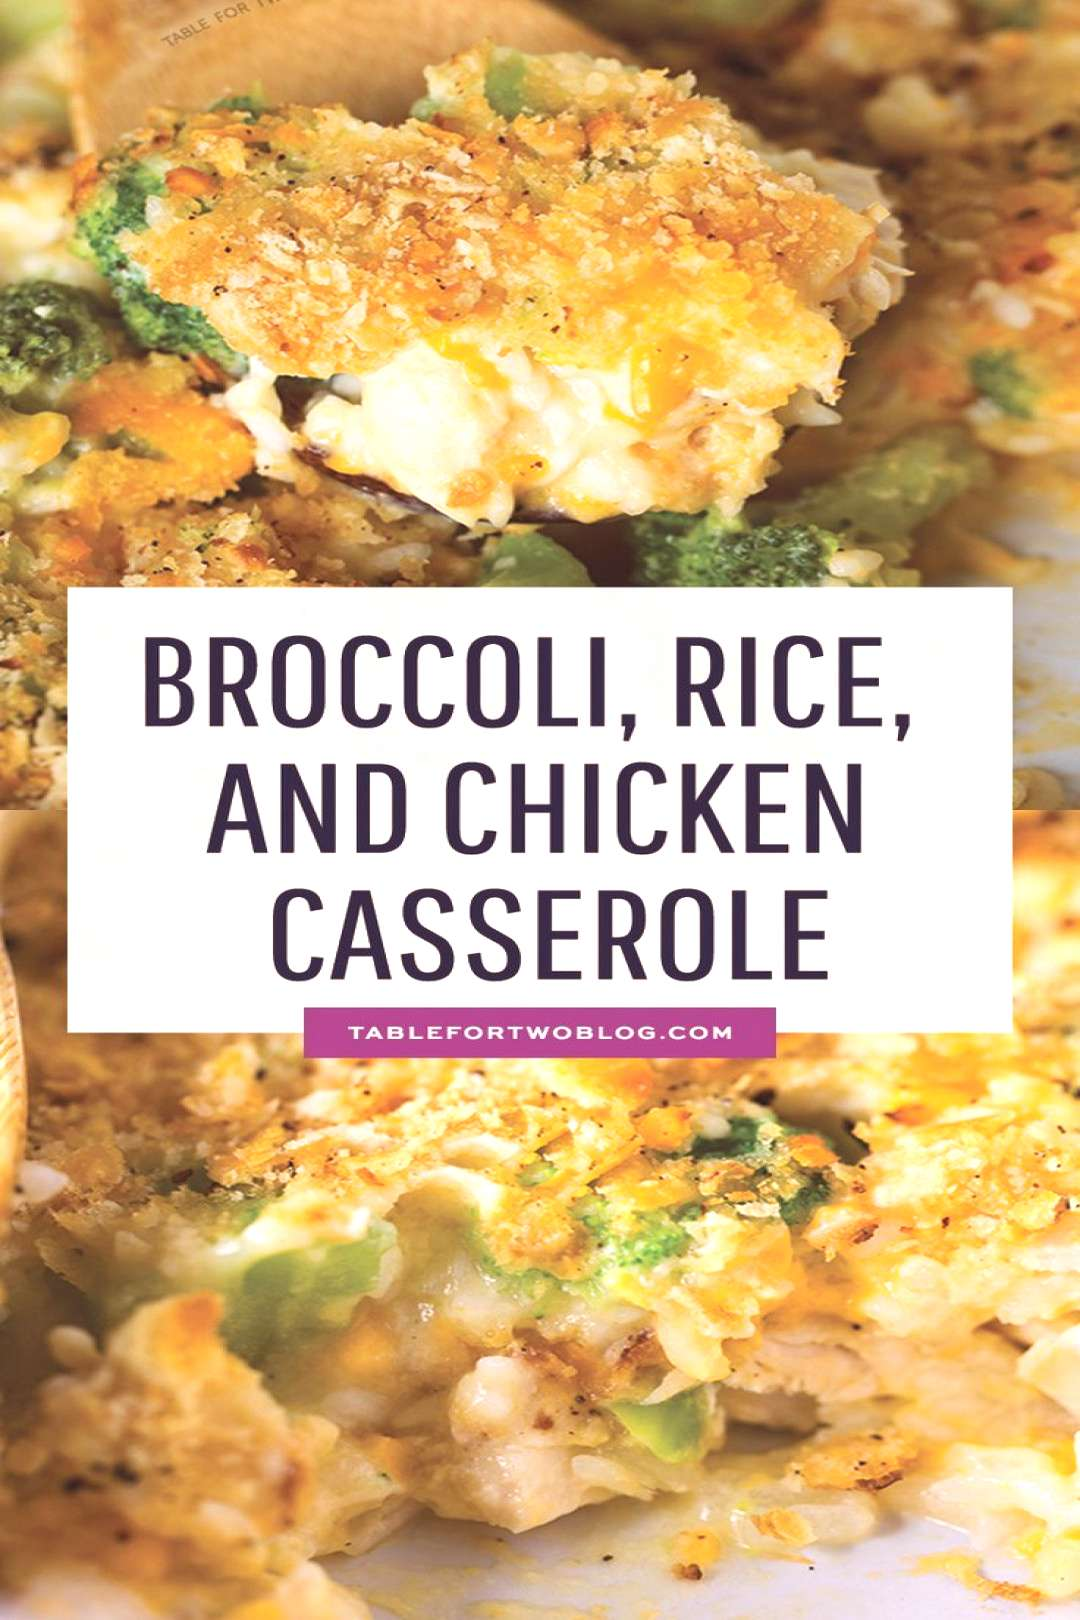 This easy broccoli, rice, and chicken casserole is topped with a buttery Ritz cracker crust. This m